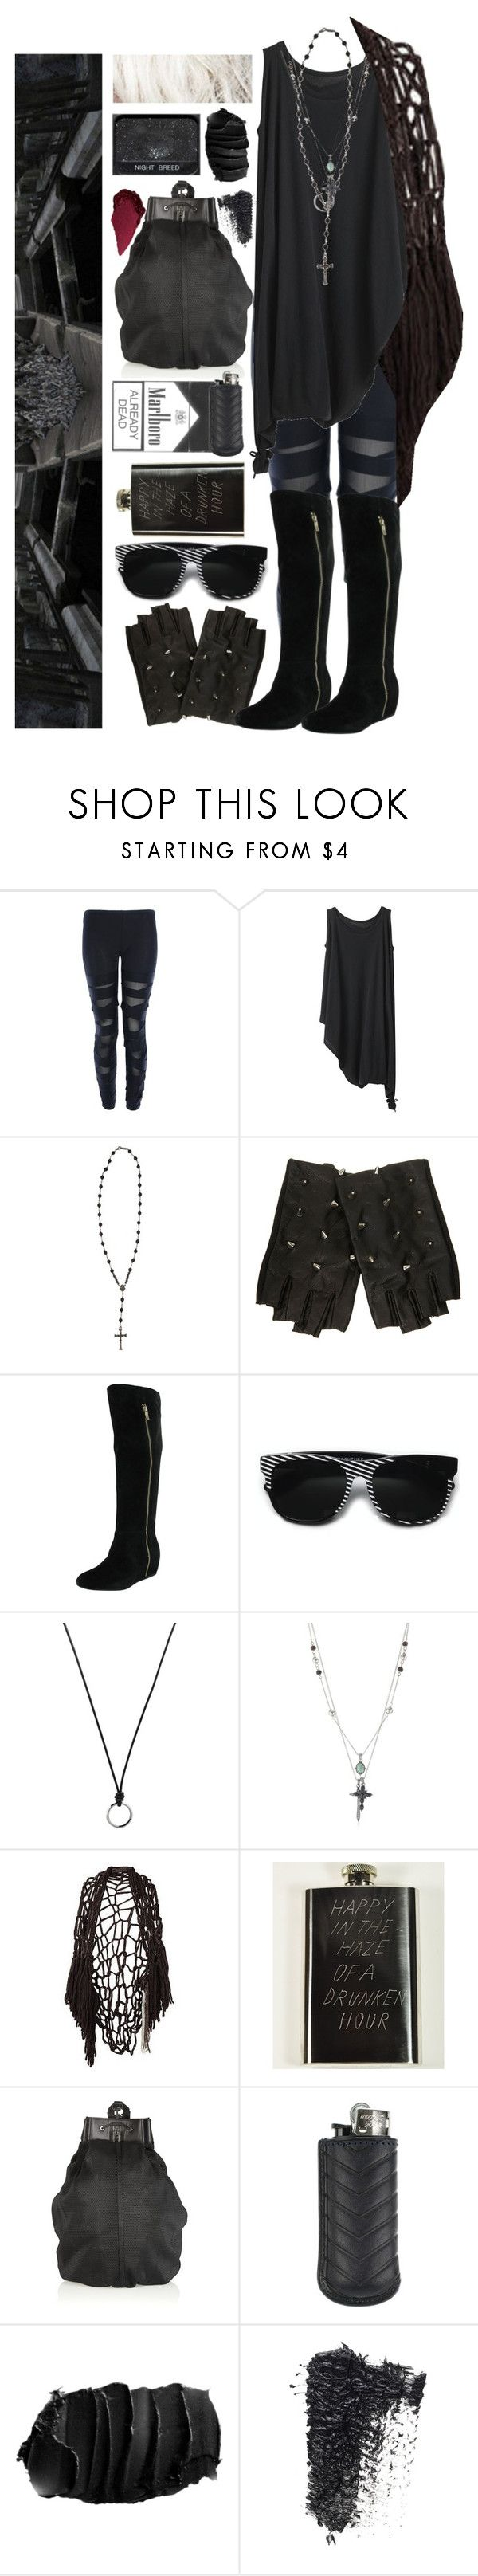 """""""spooky action at a distance"""" by no0ne ❤ liked on Polyvore featuring Y's by Yohji Yamamoto, Roman Paul, Retrò, FOSSIL, Lucky Brand, Wendy Nichol, In God We Trust, Alexander Wang, Ateliers Ruby and Stila"""